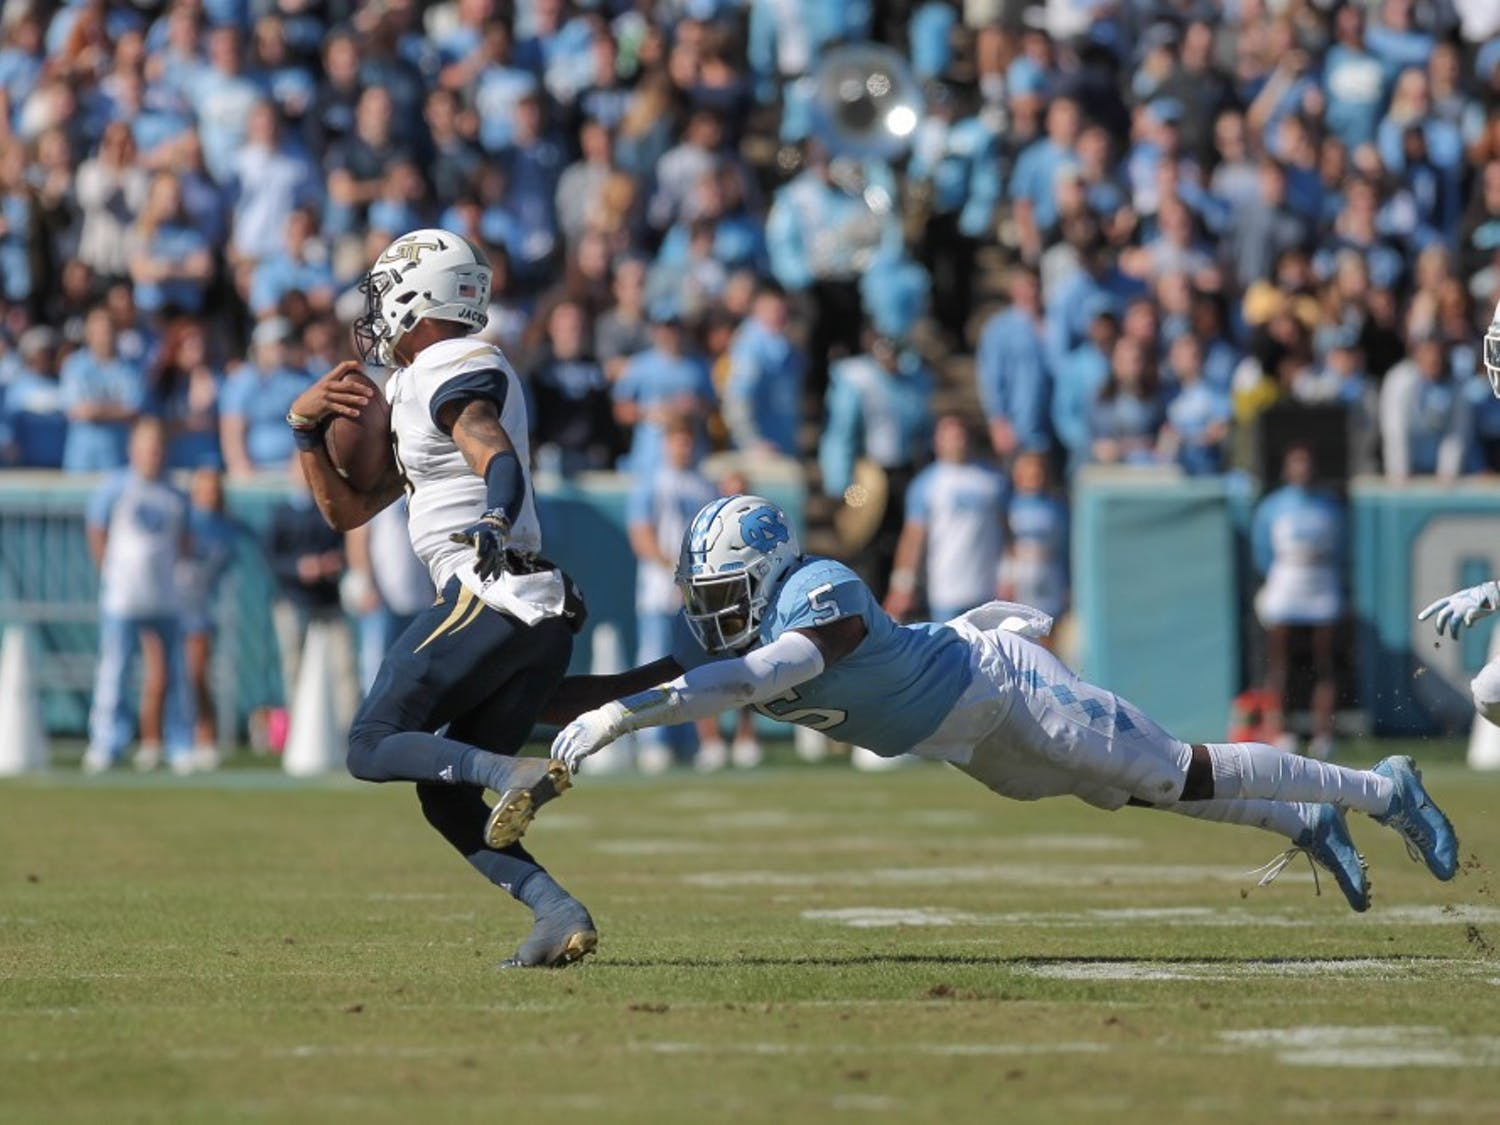 Cornerback Patrice Rene (5) dives for a tackle during the game against Georgia Tech Saturday, Nov. 3, 2018 at Kenan Memorial Stadium.. UNC lost to Georgia Tech 38-28.